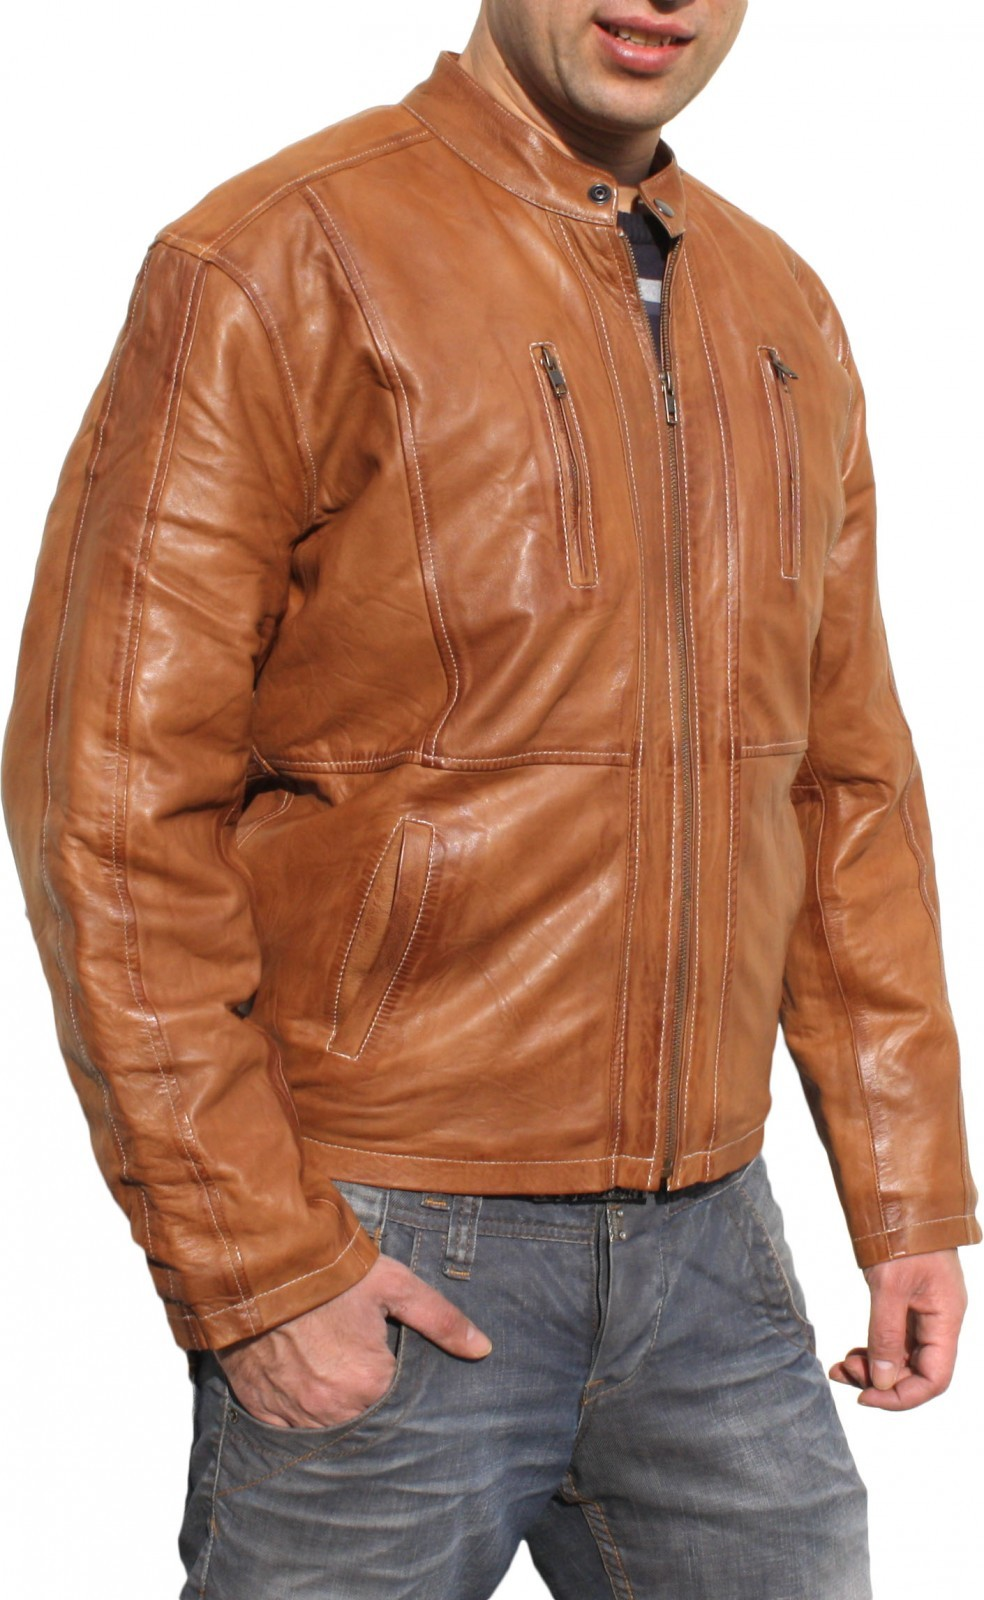 Men Leather Jacket Fashion Sheep Skin Lamb Nappa-LeatherColor Brown